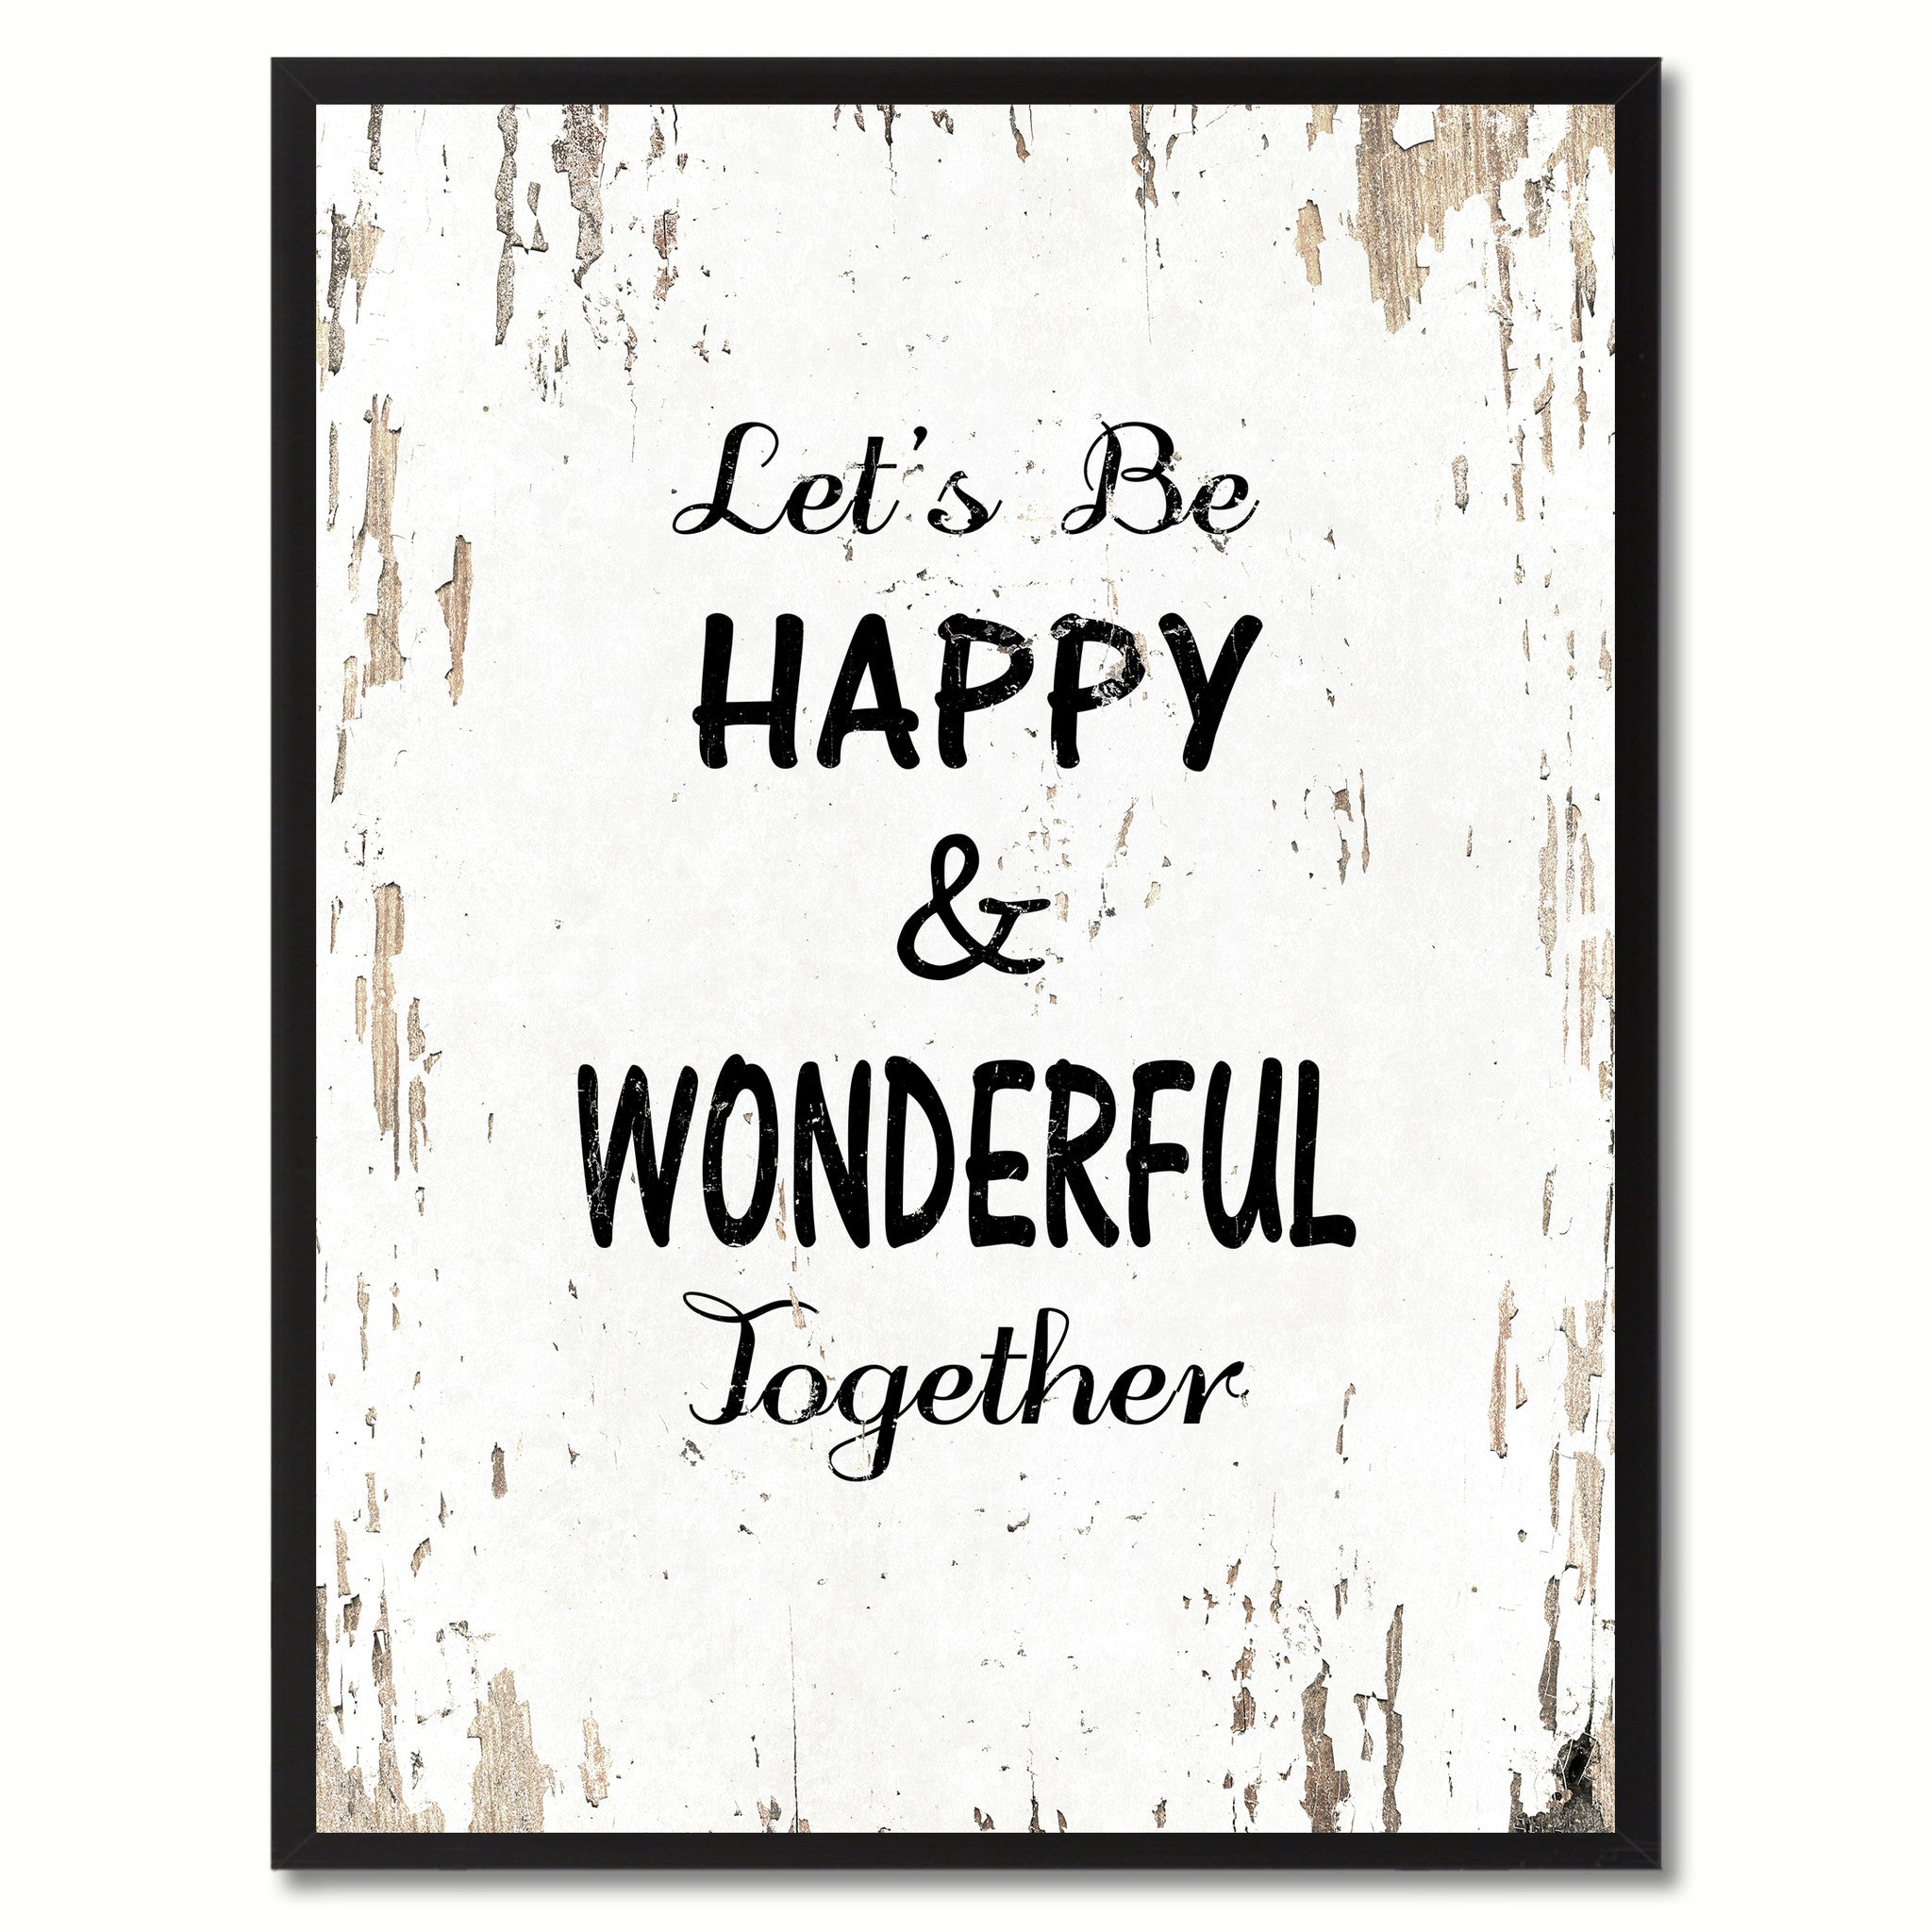 Let's Be Happy & Wonderful Together Saying Canvas Print, Black Picture Frame Home Decor Wall Art Gifts